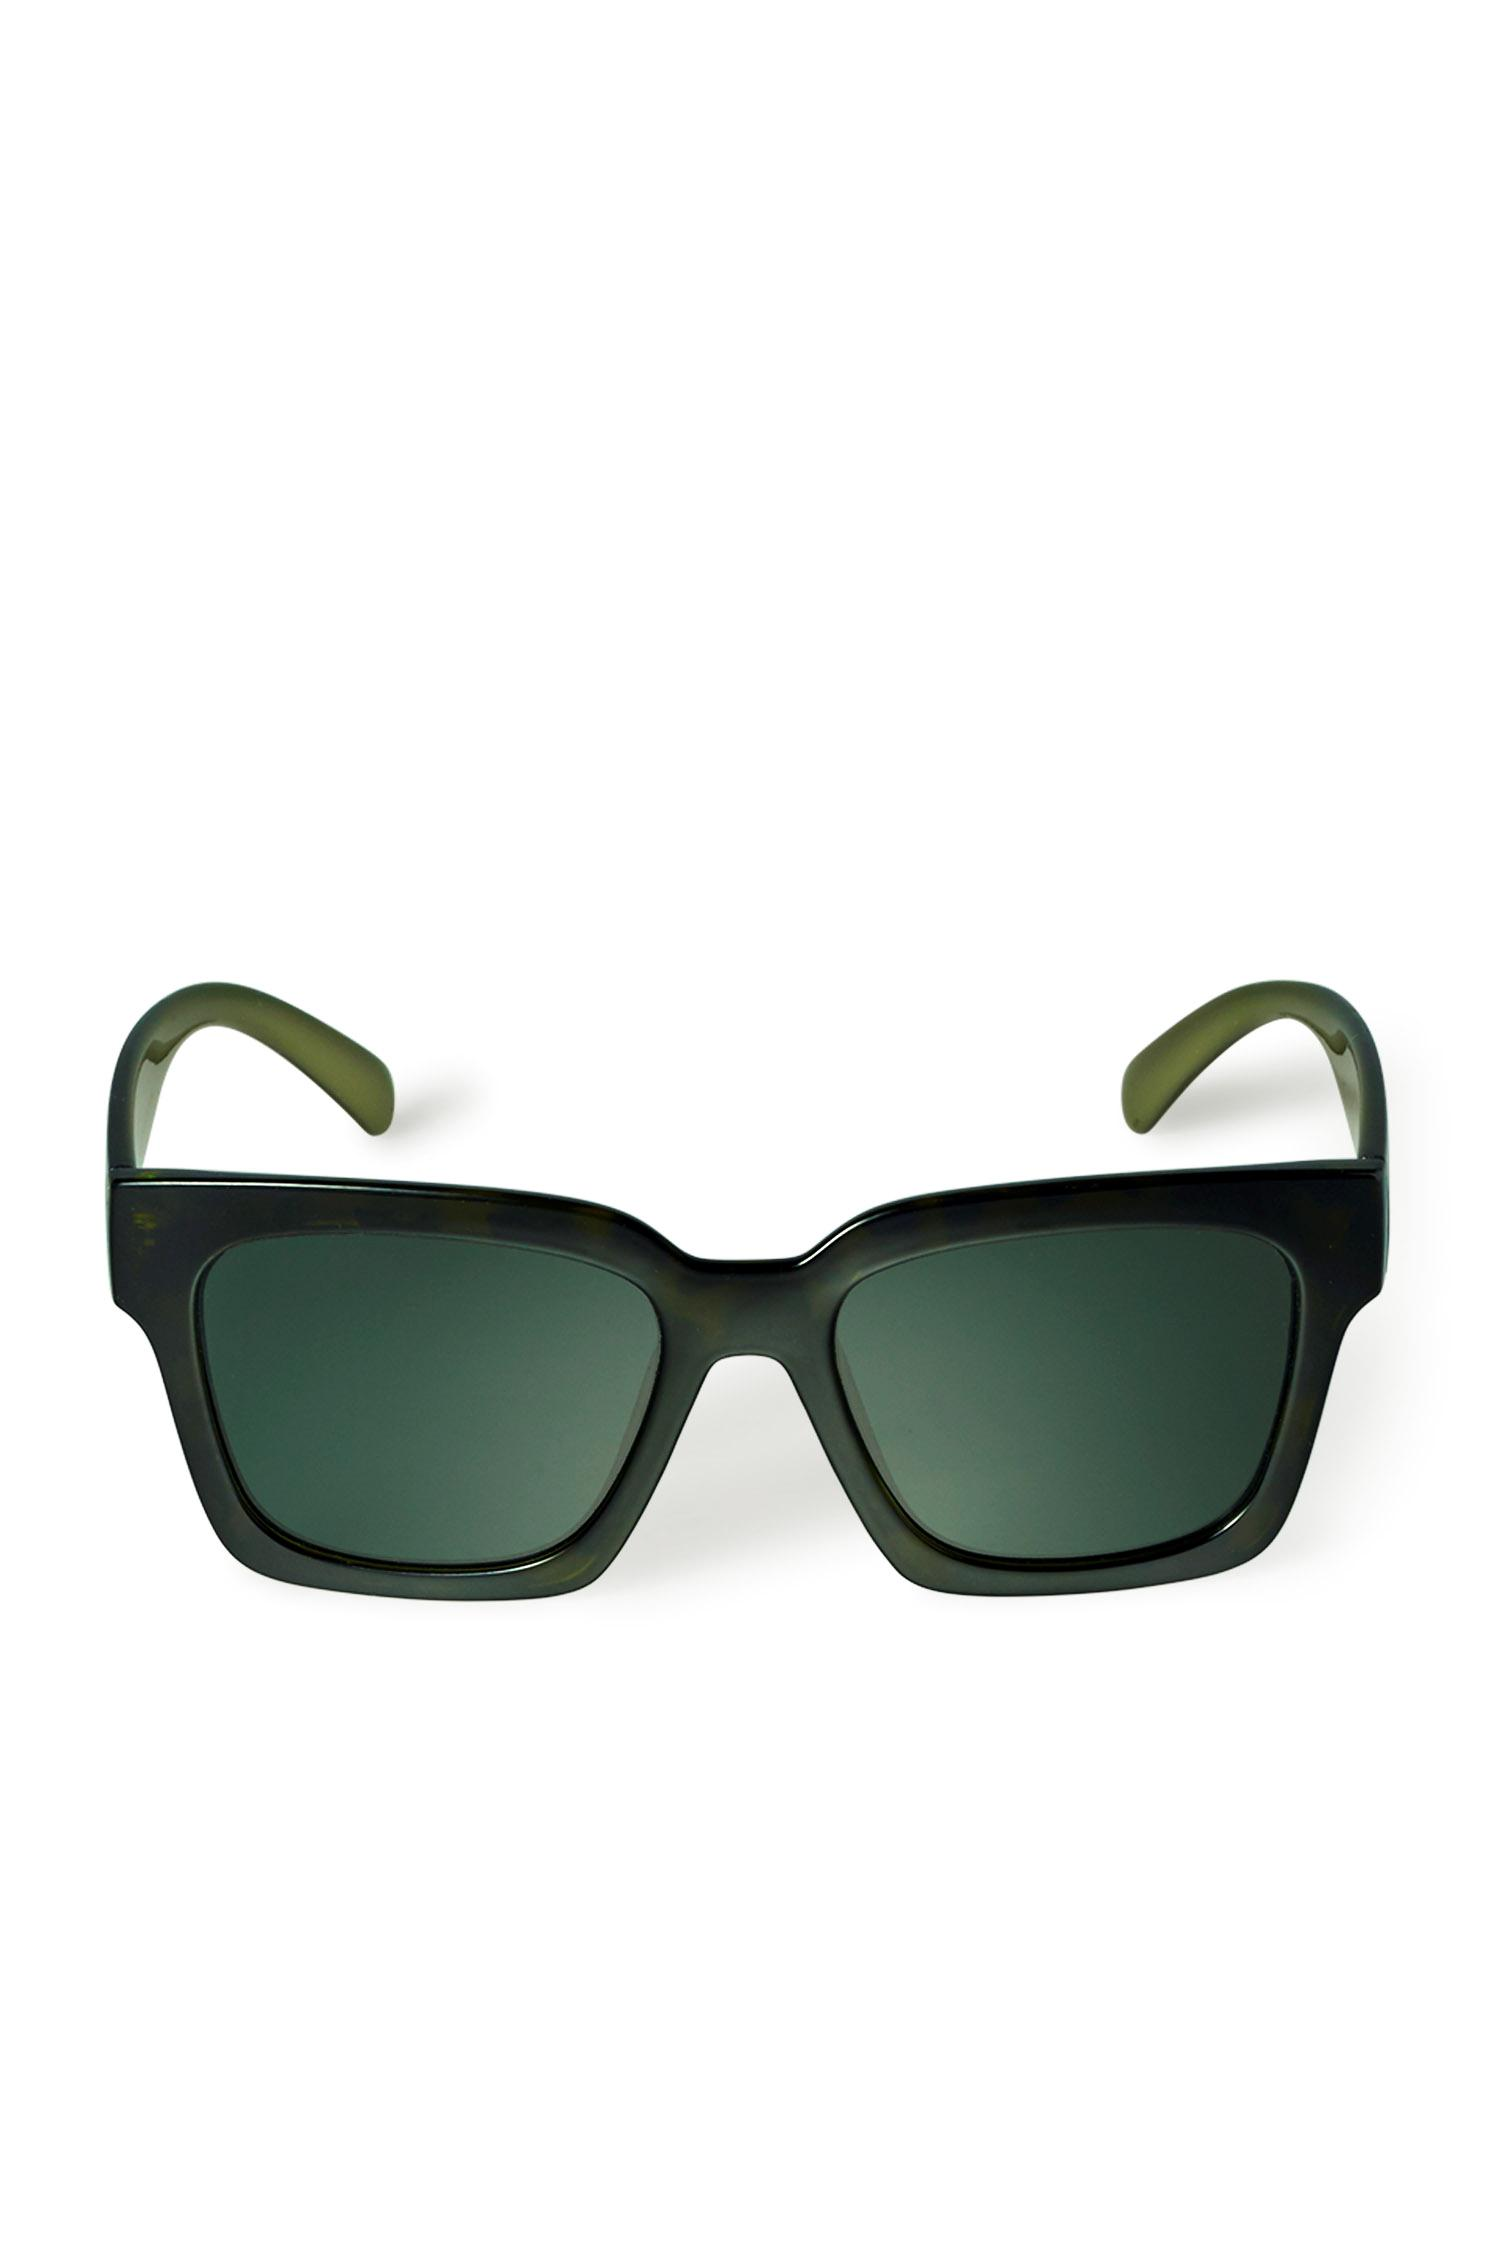 4a6f295b08f1 Weekday Exit Oversized Sunglasses in Green for Men - Lyst